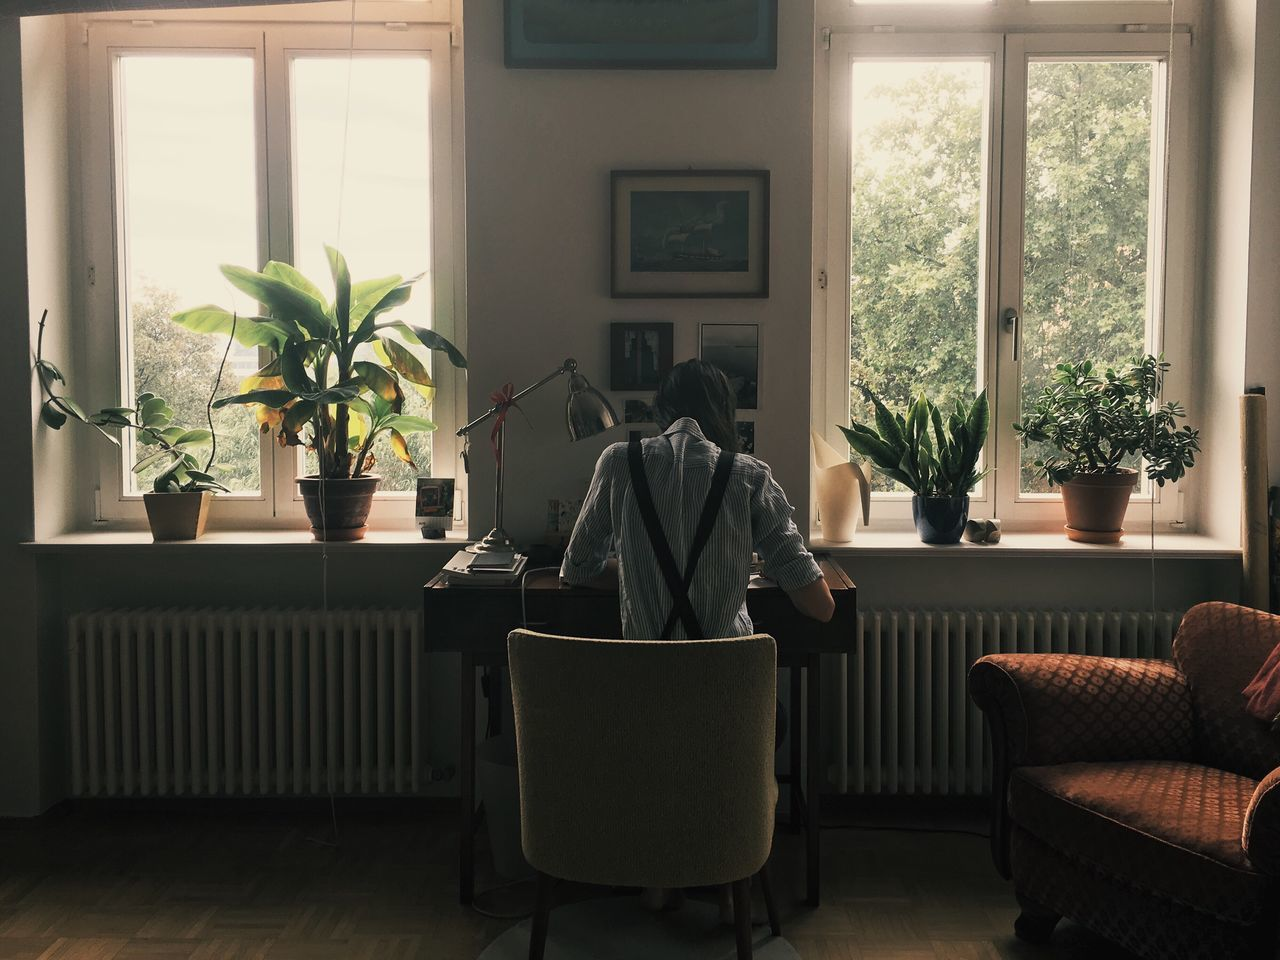 Window Plant Indoors  Home Interior One Person Radiator Day Nature People